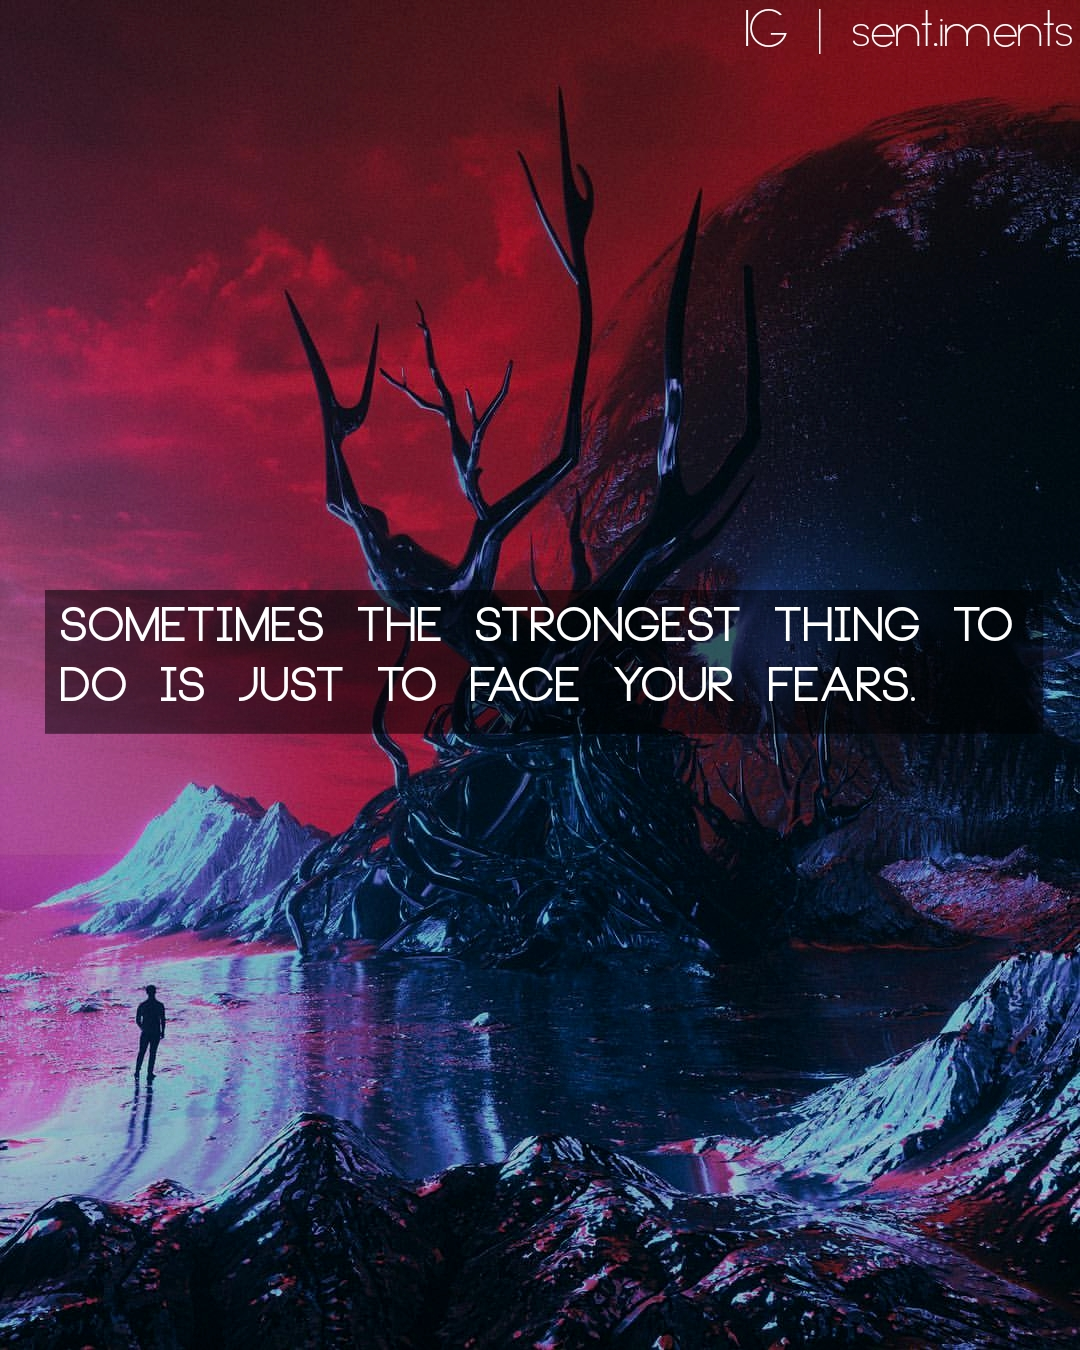 Sometimes the strongest thing to do is just to face your fears by Unknown (1080X1350)